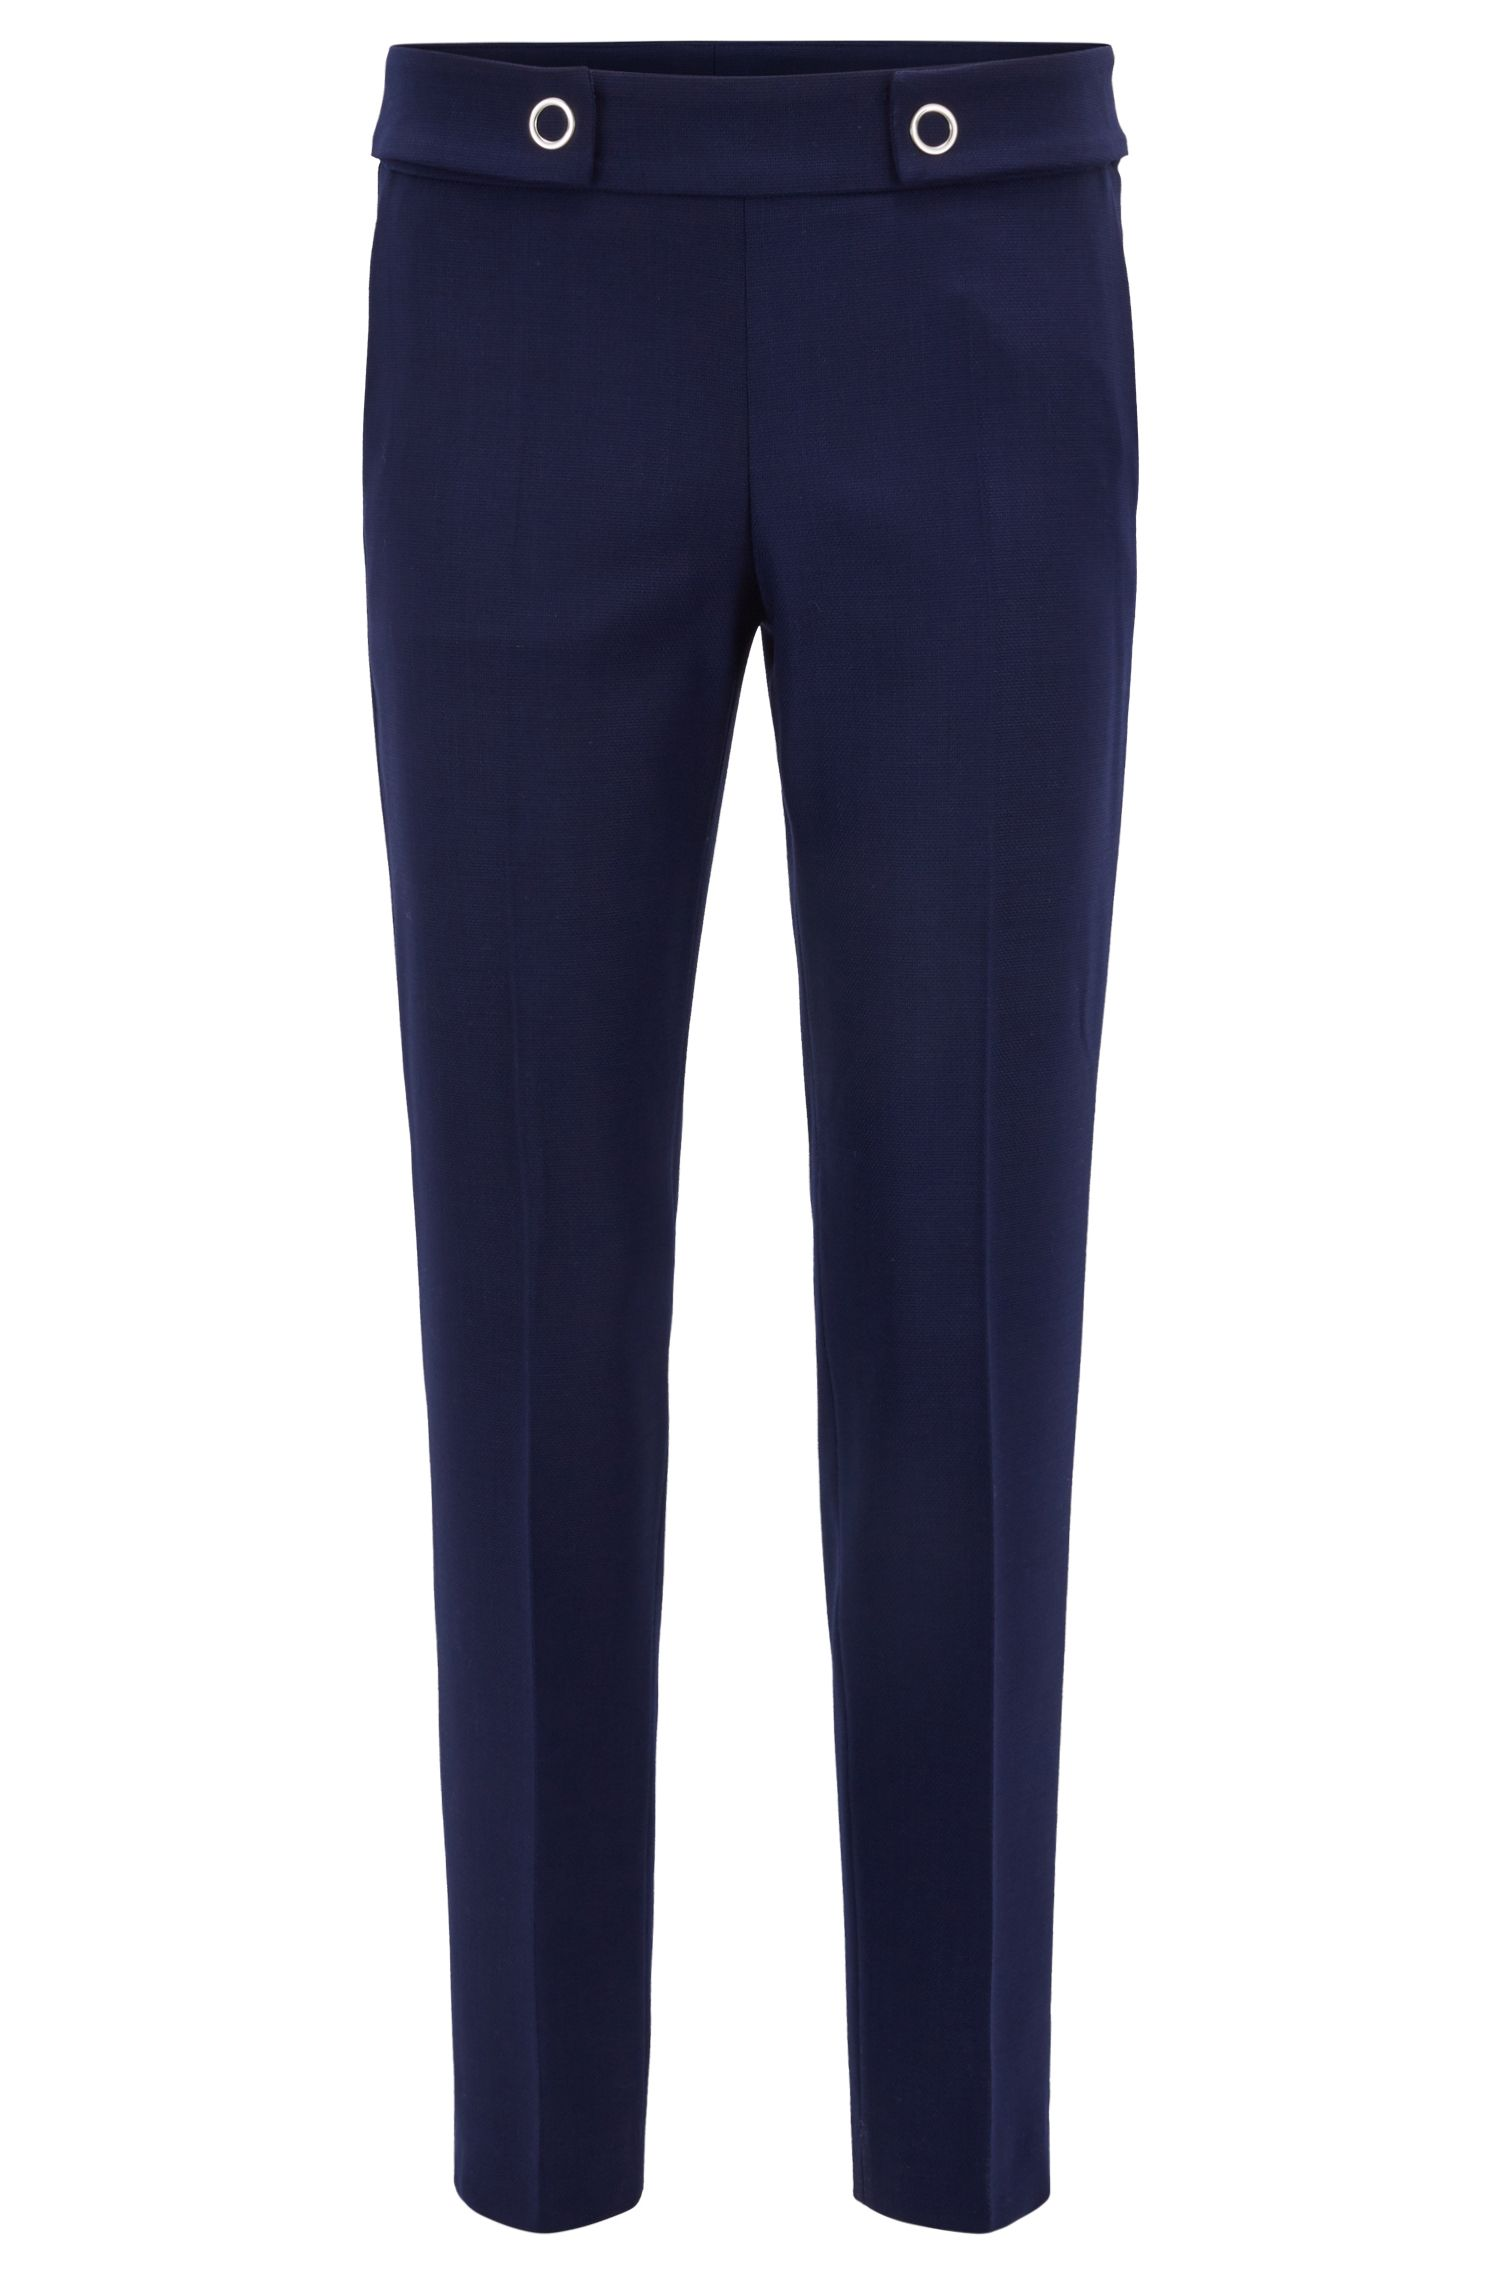 Stretch Virgin Wool Cropped Pant | Tibalena, Blue